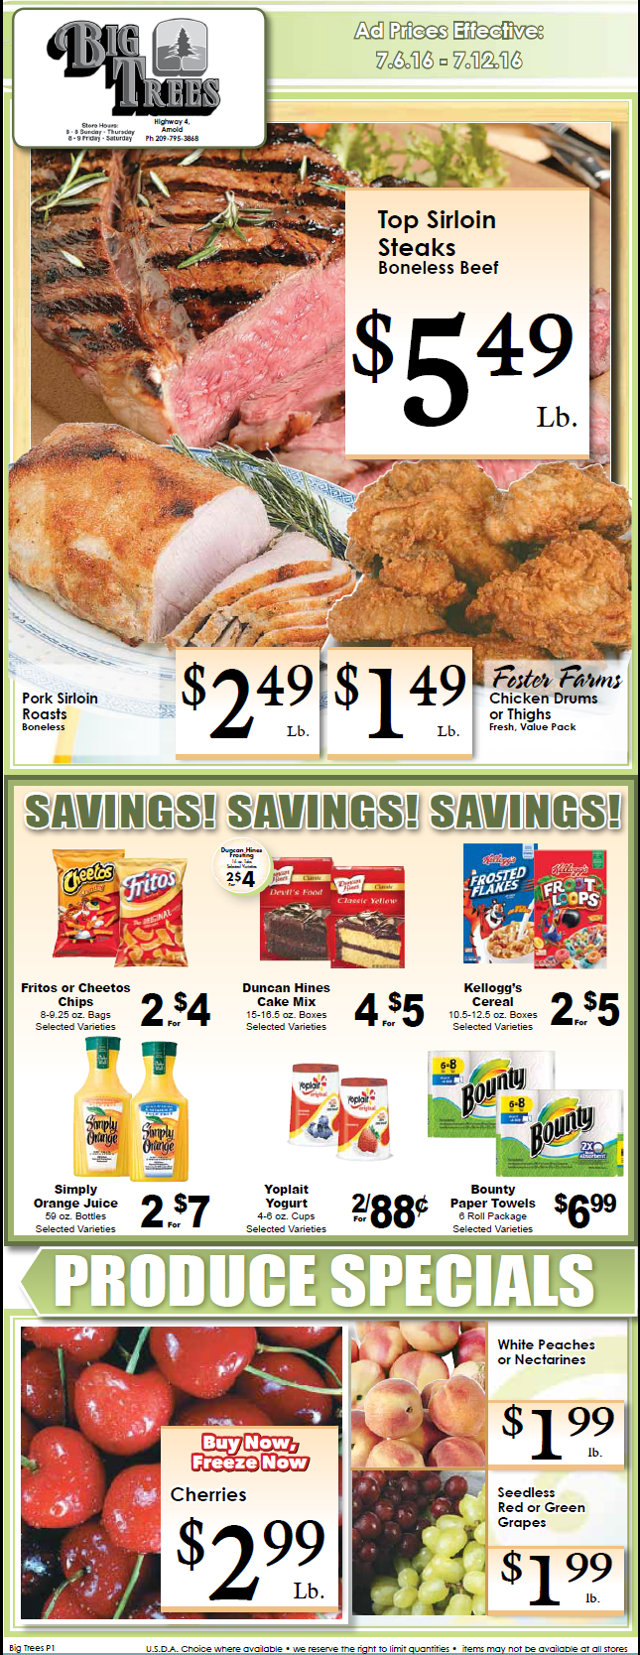 Big Trees Market Weekly Ad & Specials Through July 12th